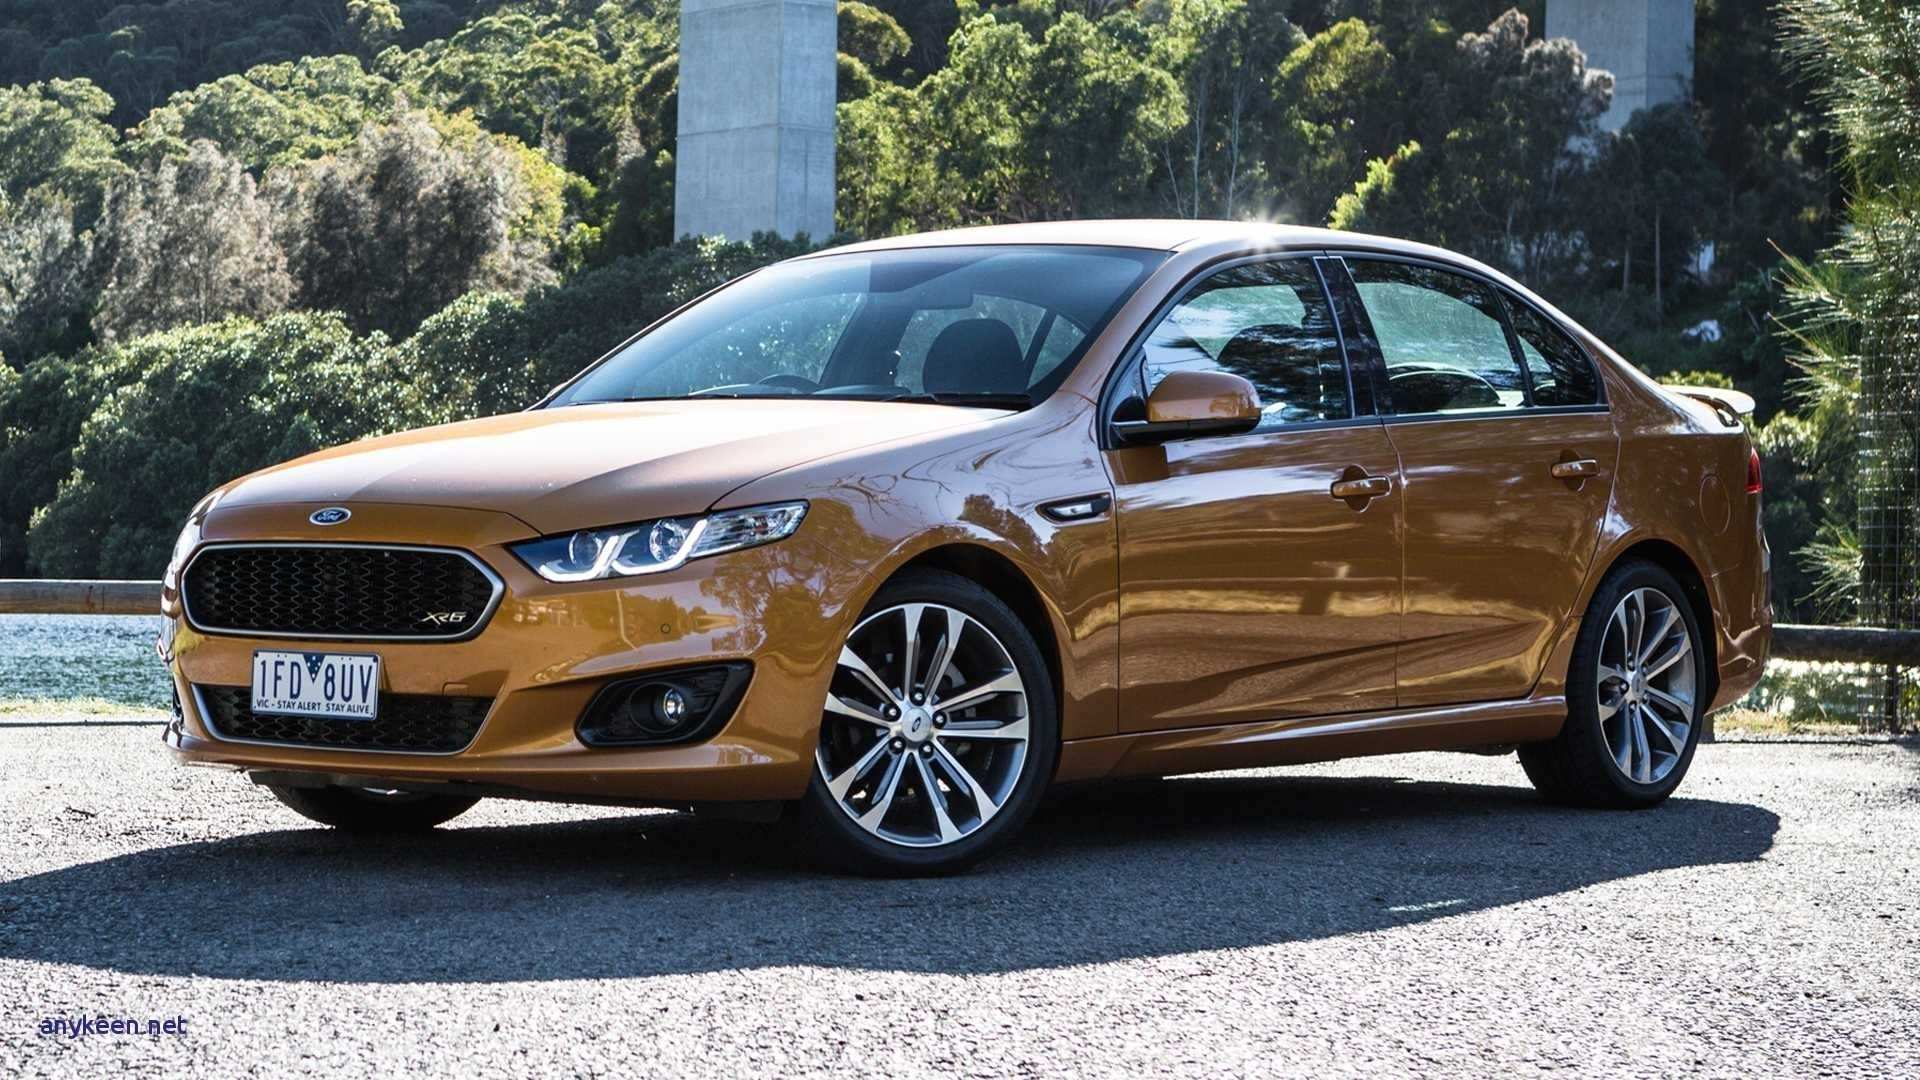 19 New 2019 Ford Falcon Xr8 Gt Review And Release Date